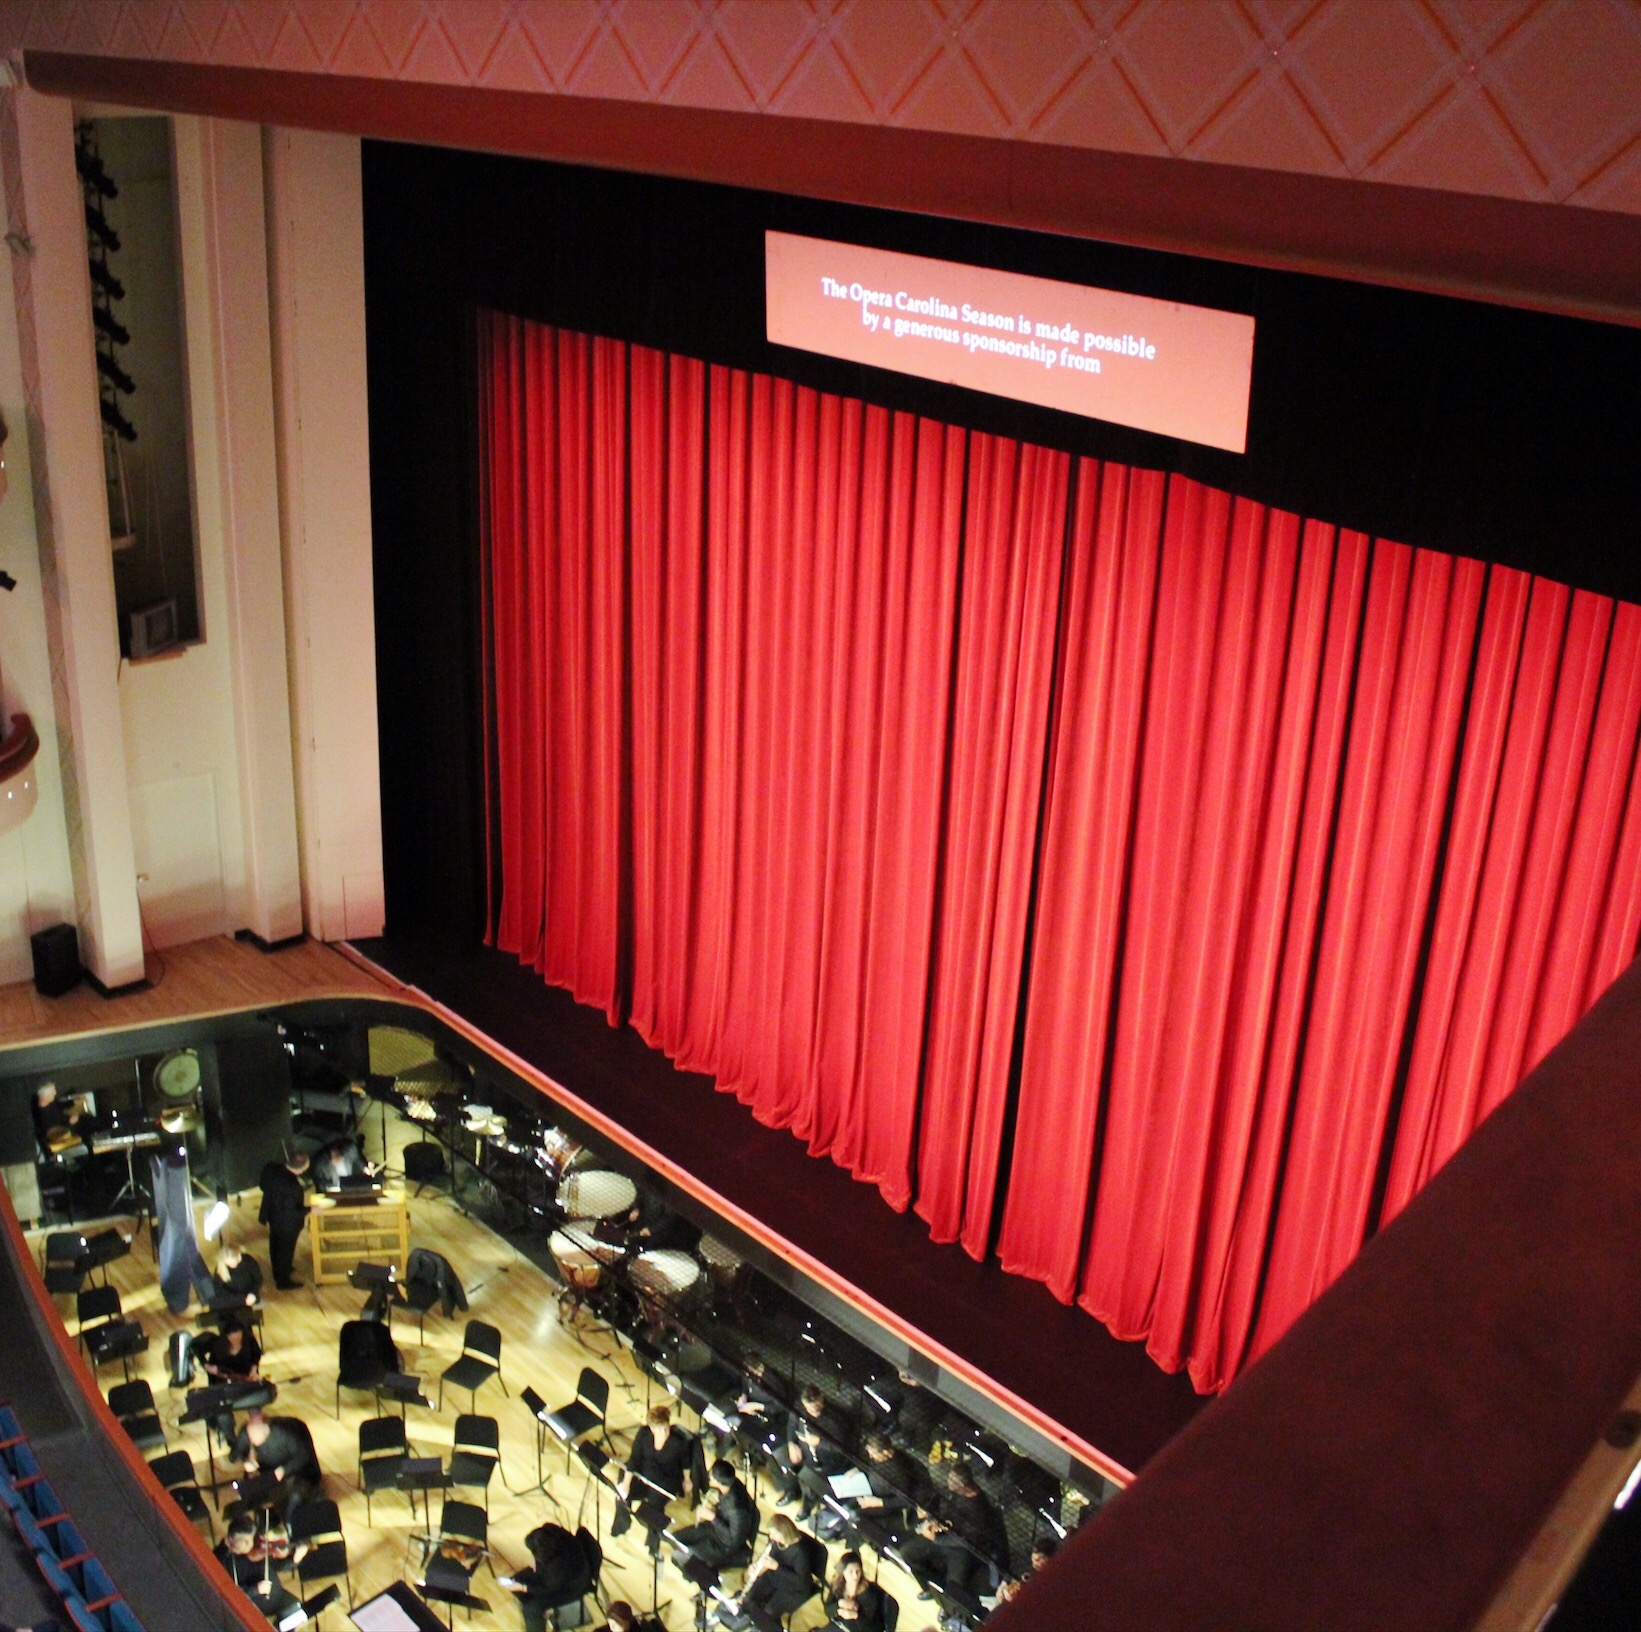 The stage and orchestra section in the Bell Theater